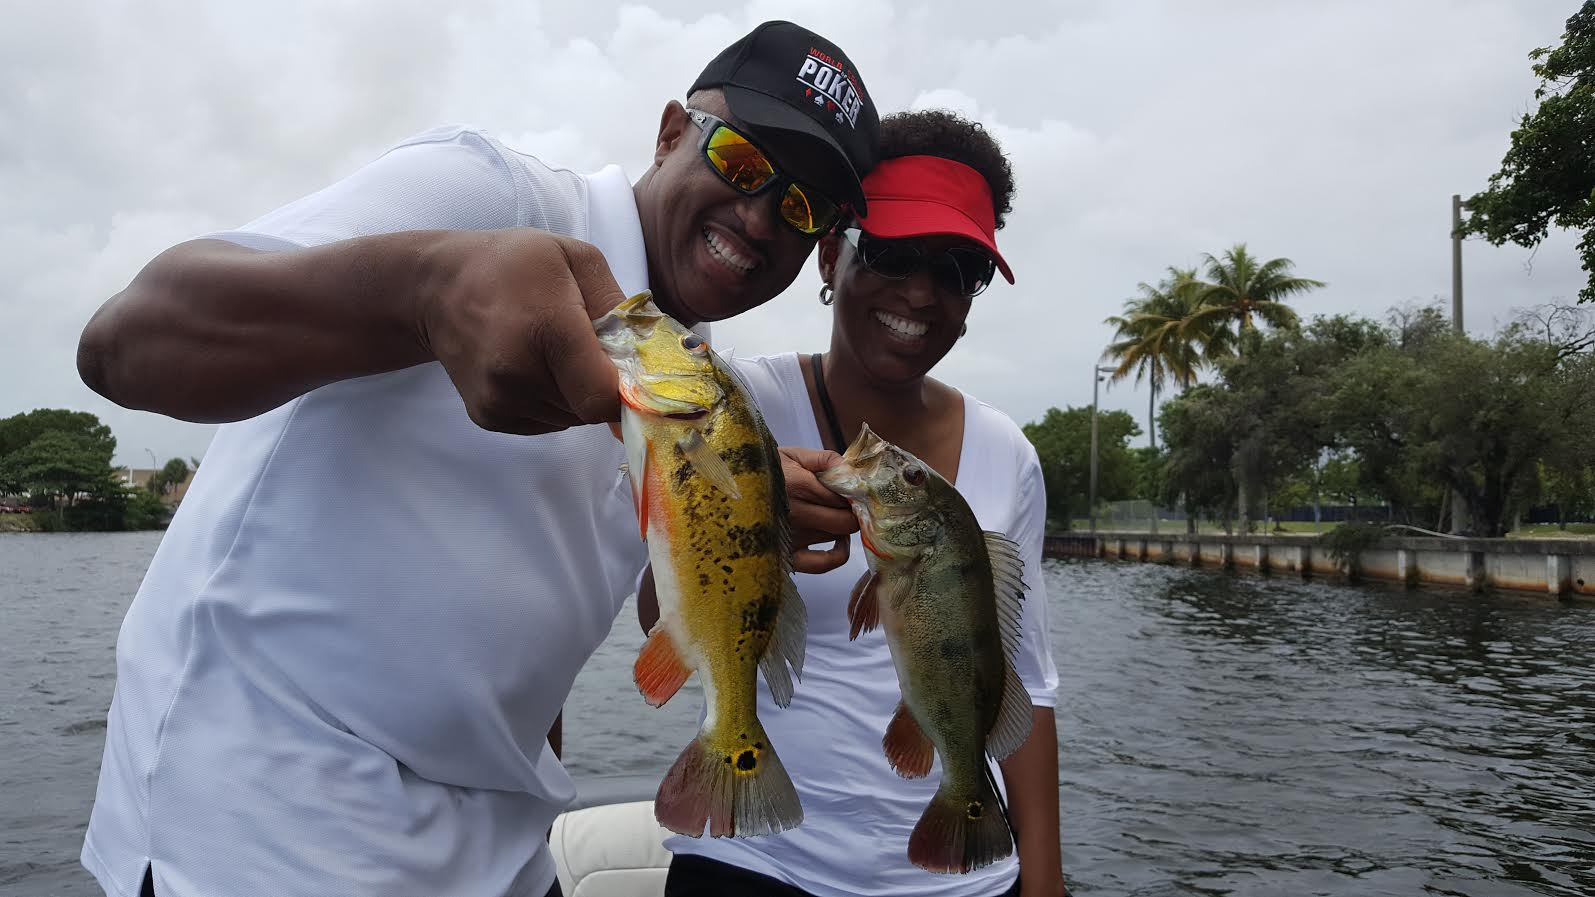 Southeast florida bass fishing with capt tony masiello for Southeast florida fishing report